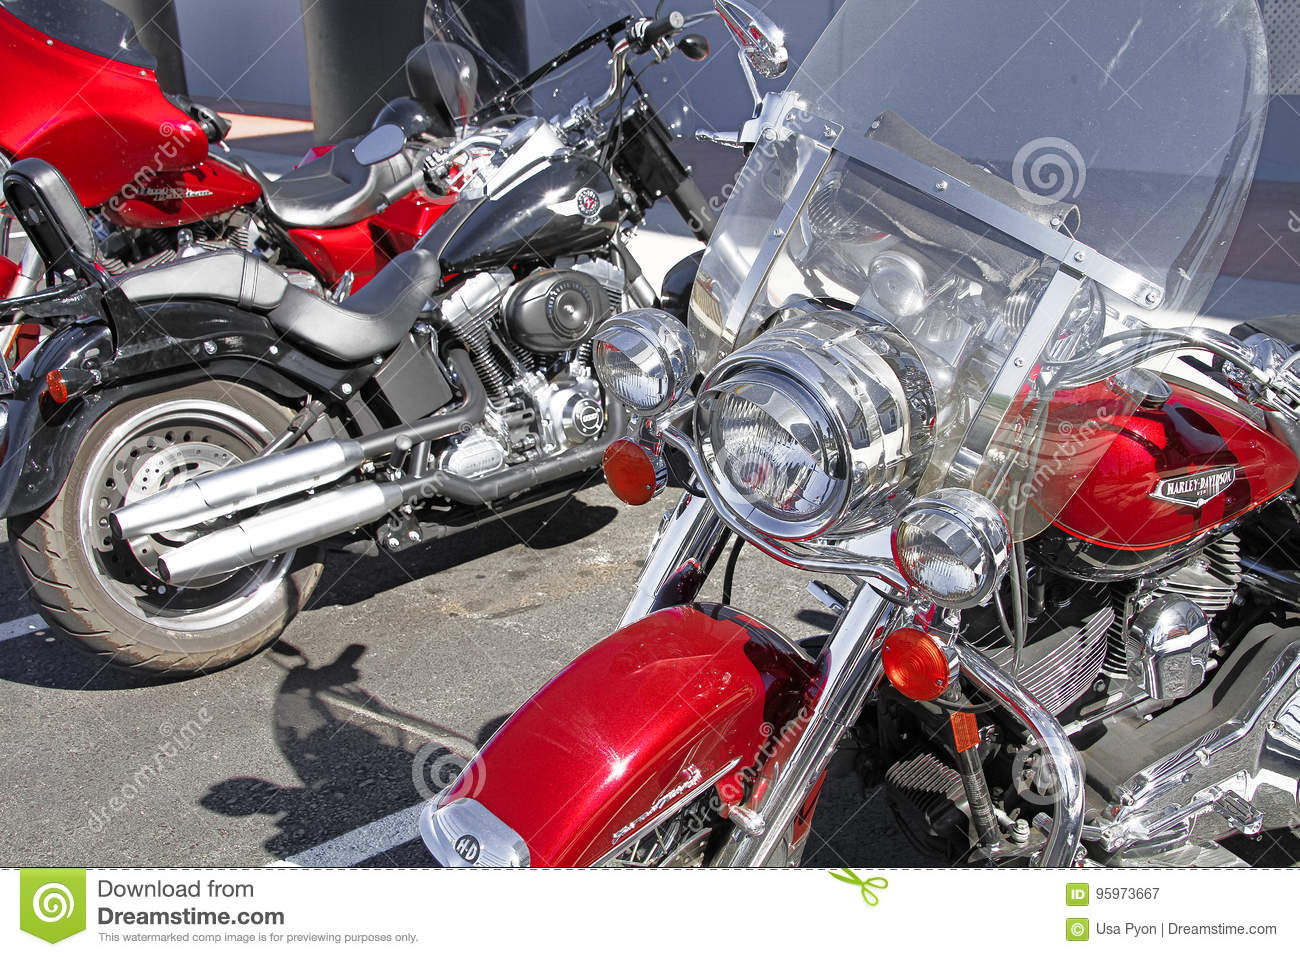 Harley Davidson Motorcycle Editorial Photography Image Of Town